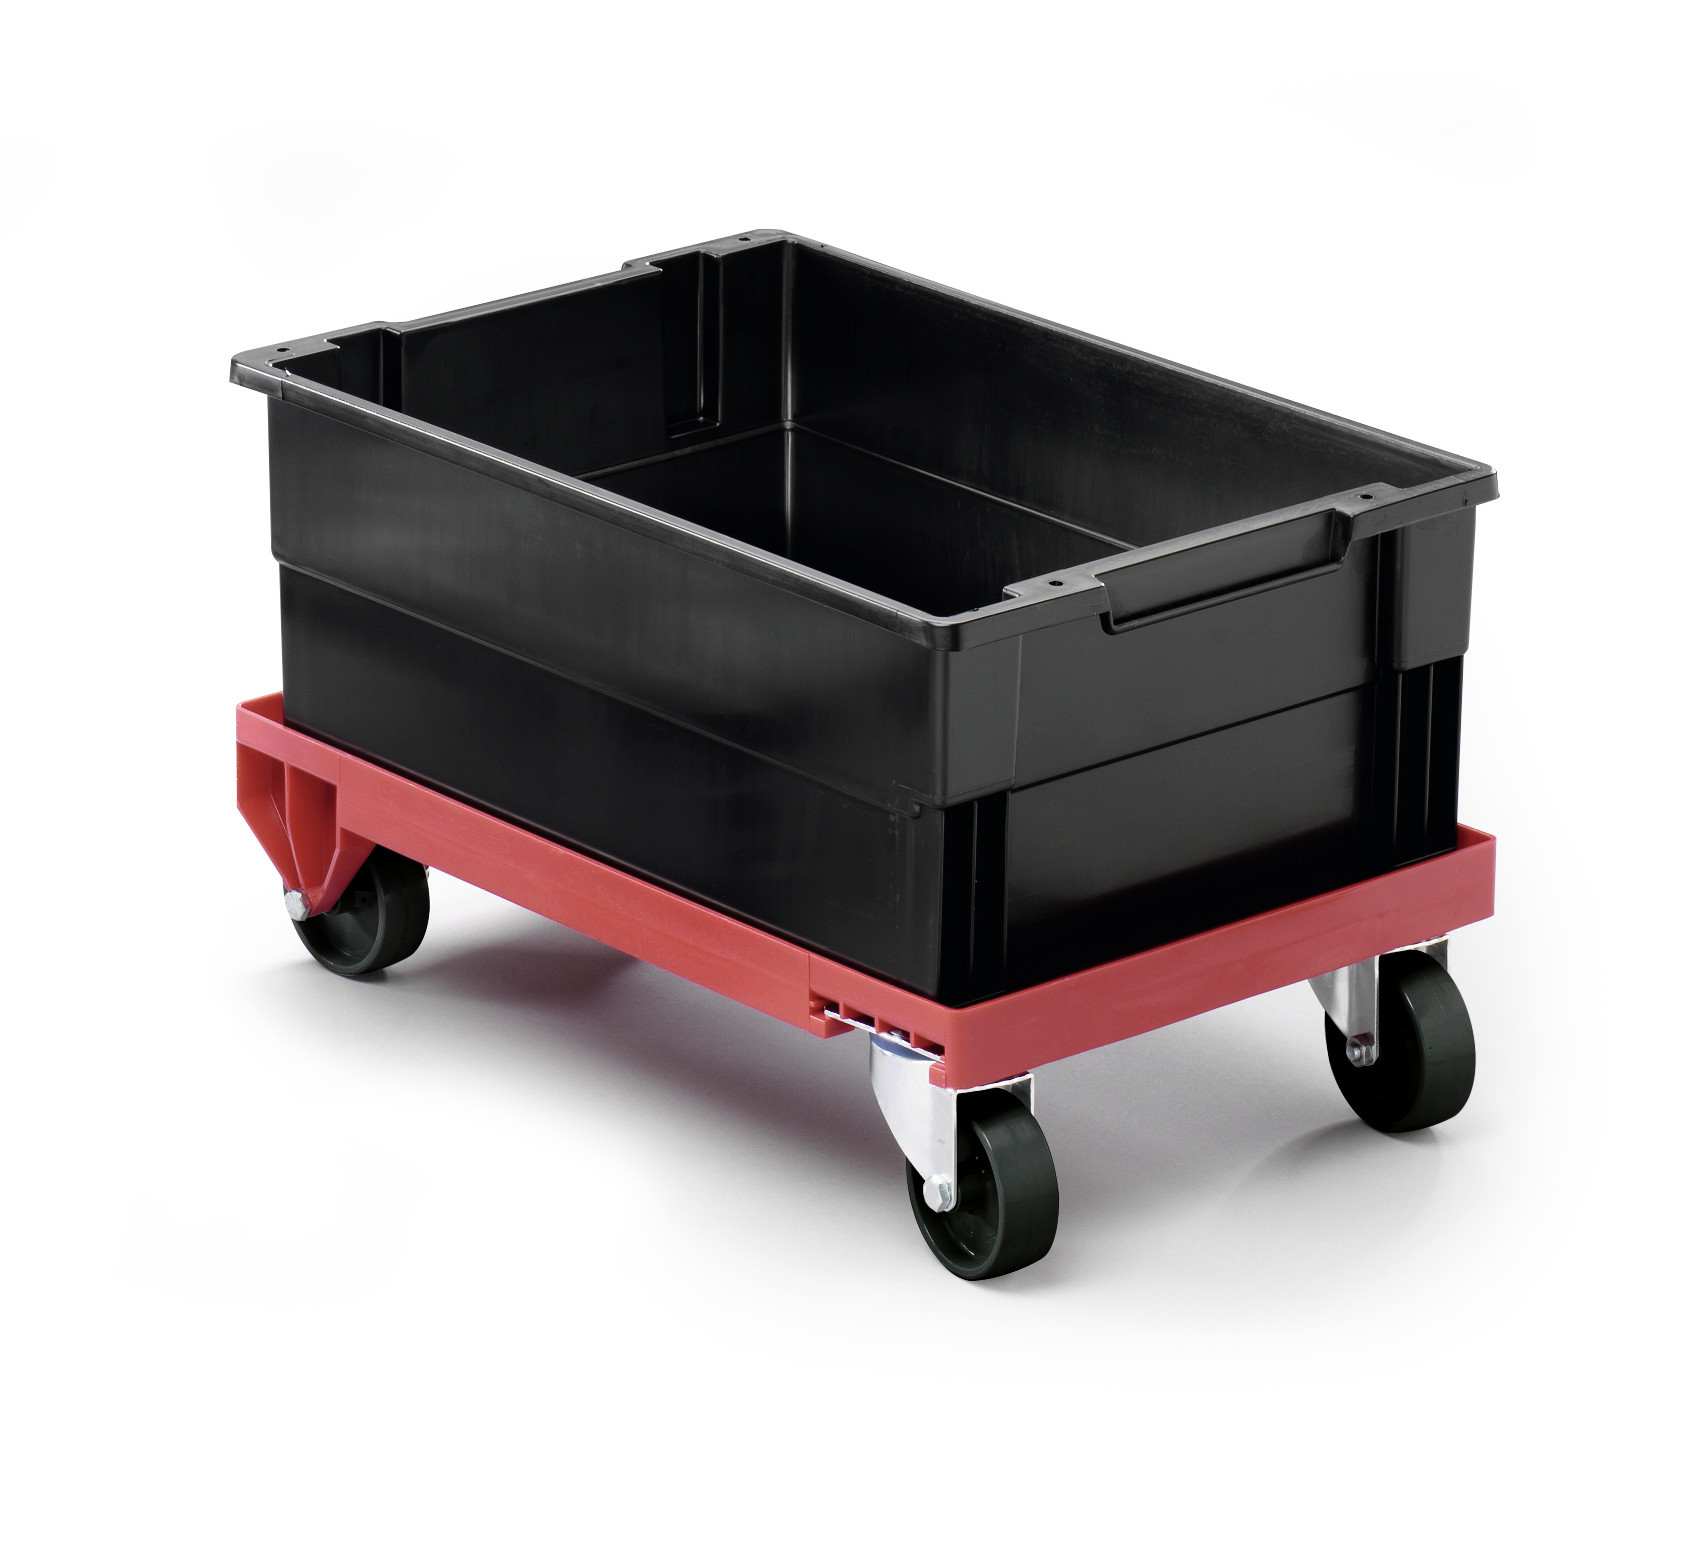 DURABLE LAGERTROLLEY 1 ST Z1809693999